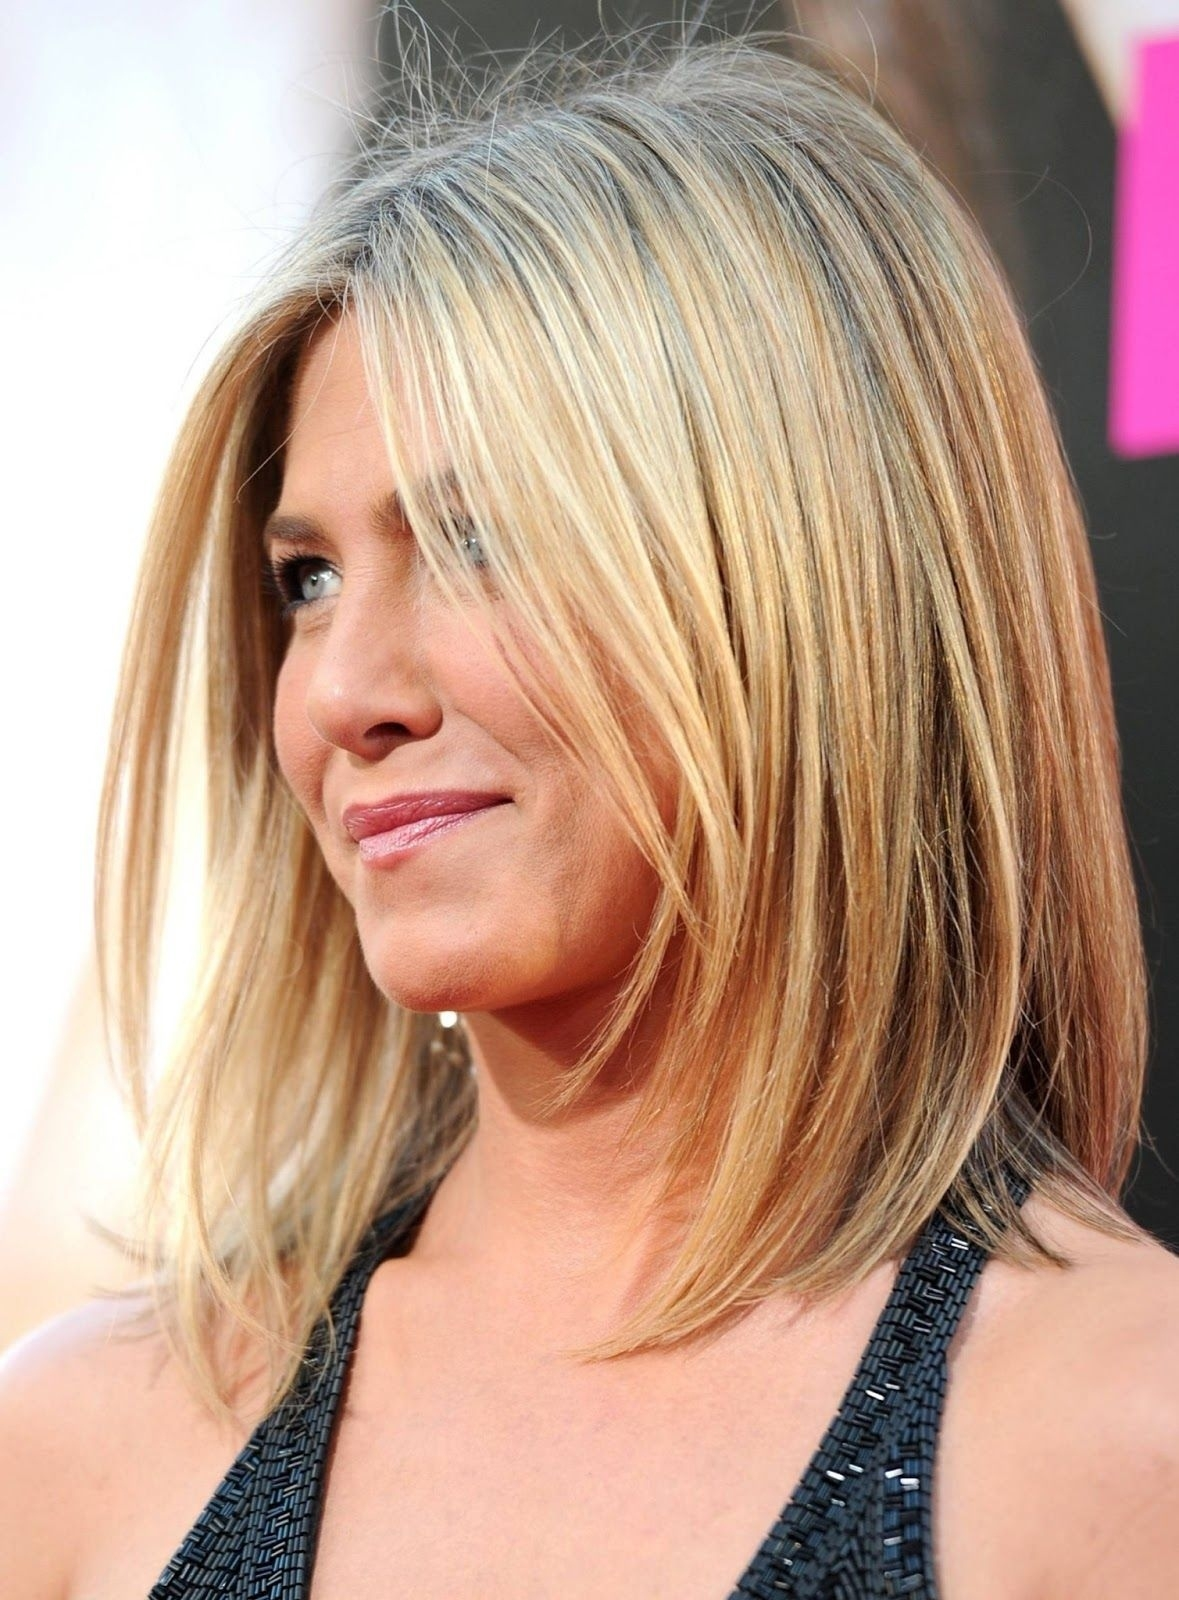 50 Hairstyles For Thin Hair - Best Haircuts For Thinning Hair in Premier Asian Hairstyles Thin Hair